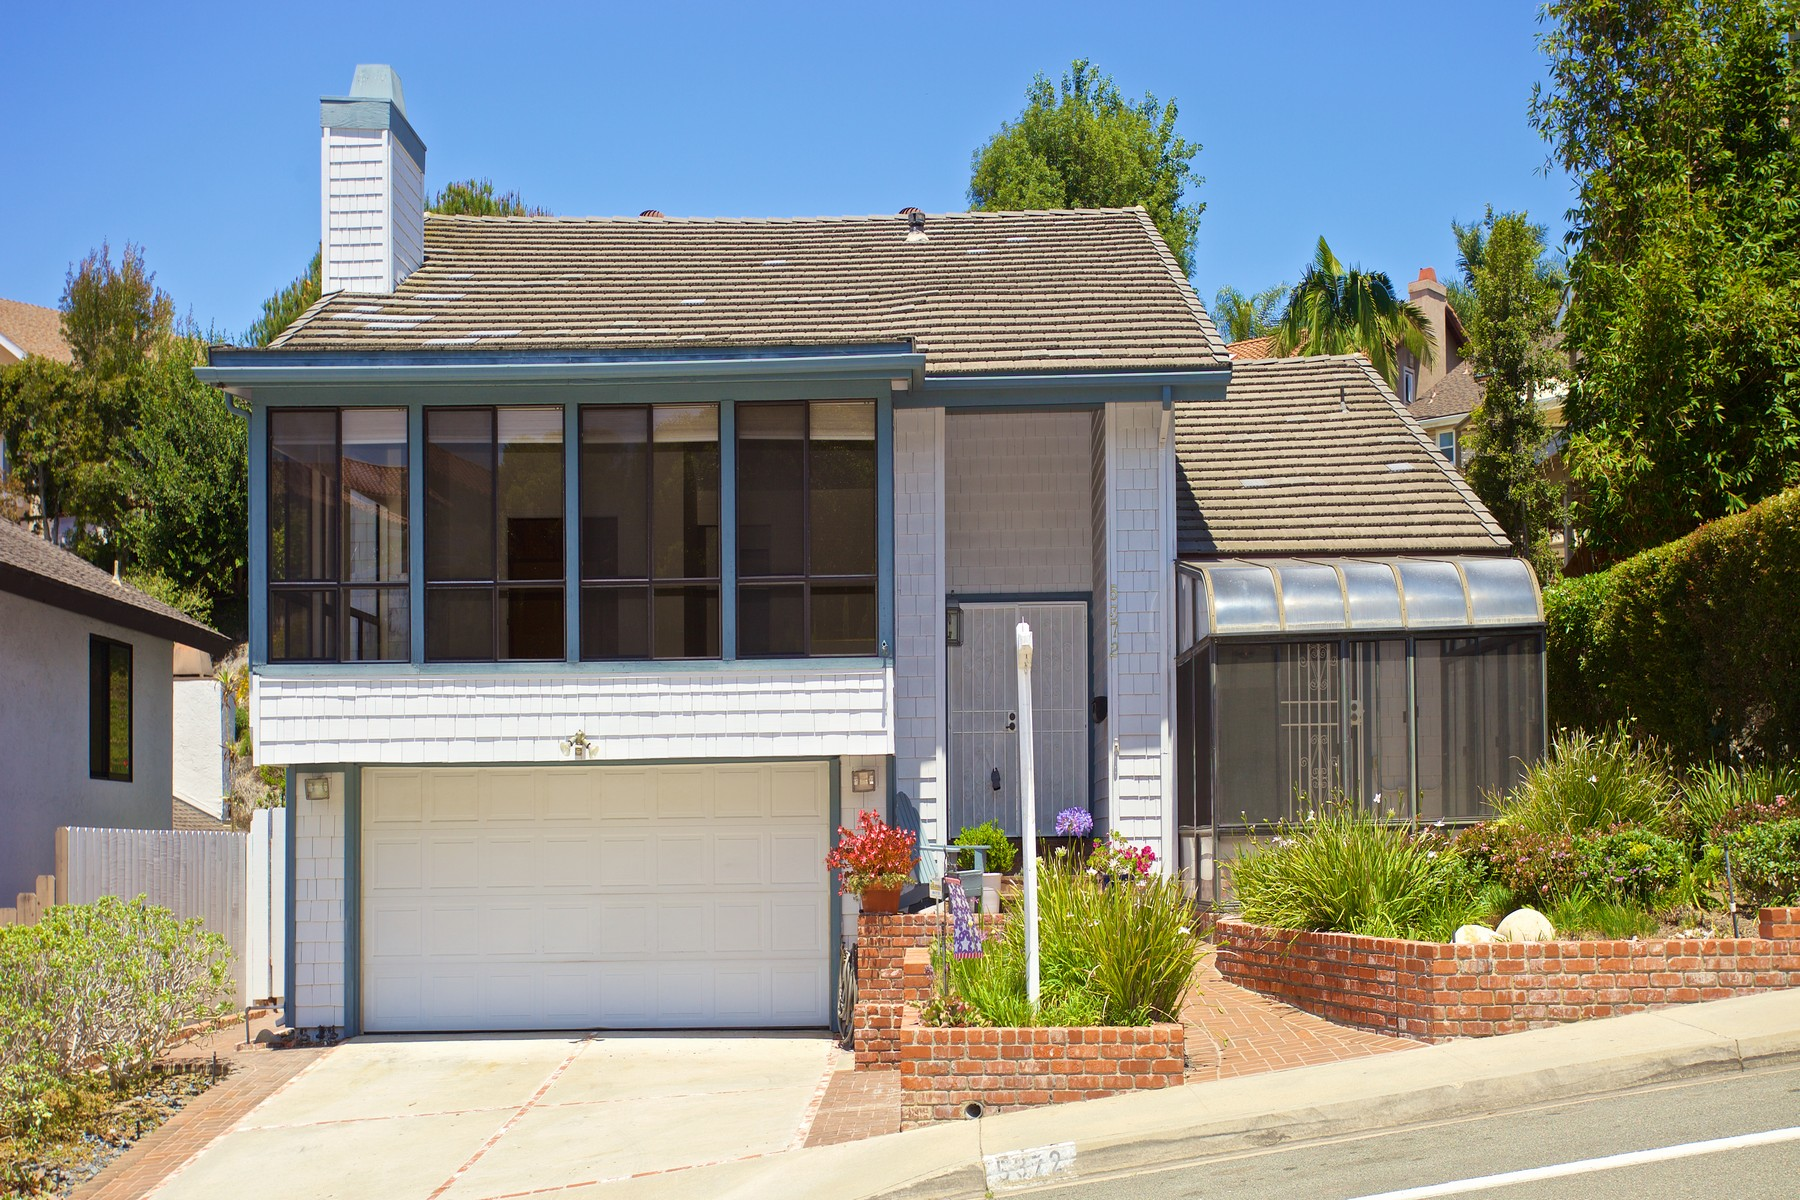 Single Family Home for Sale at 5372 Cardeno Drive San Diego, California 92109 United States